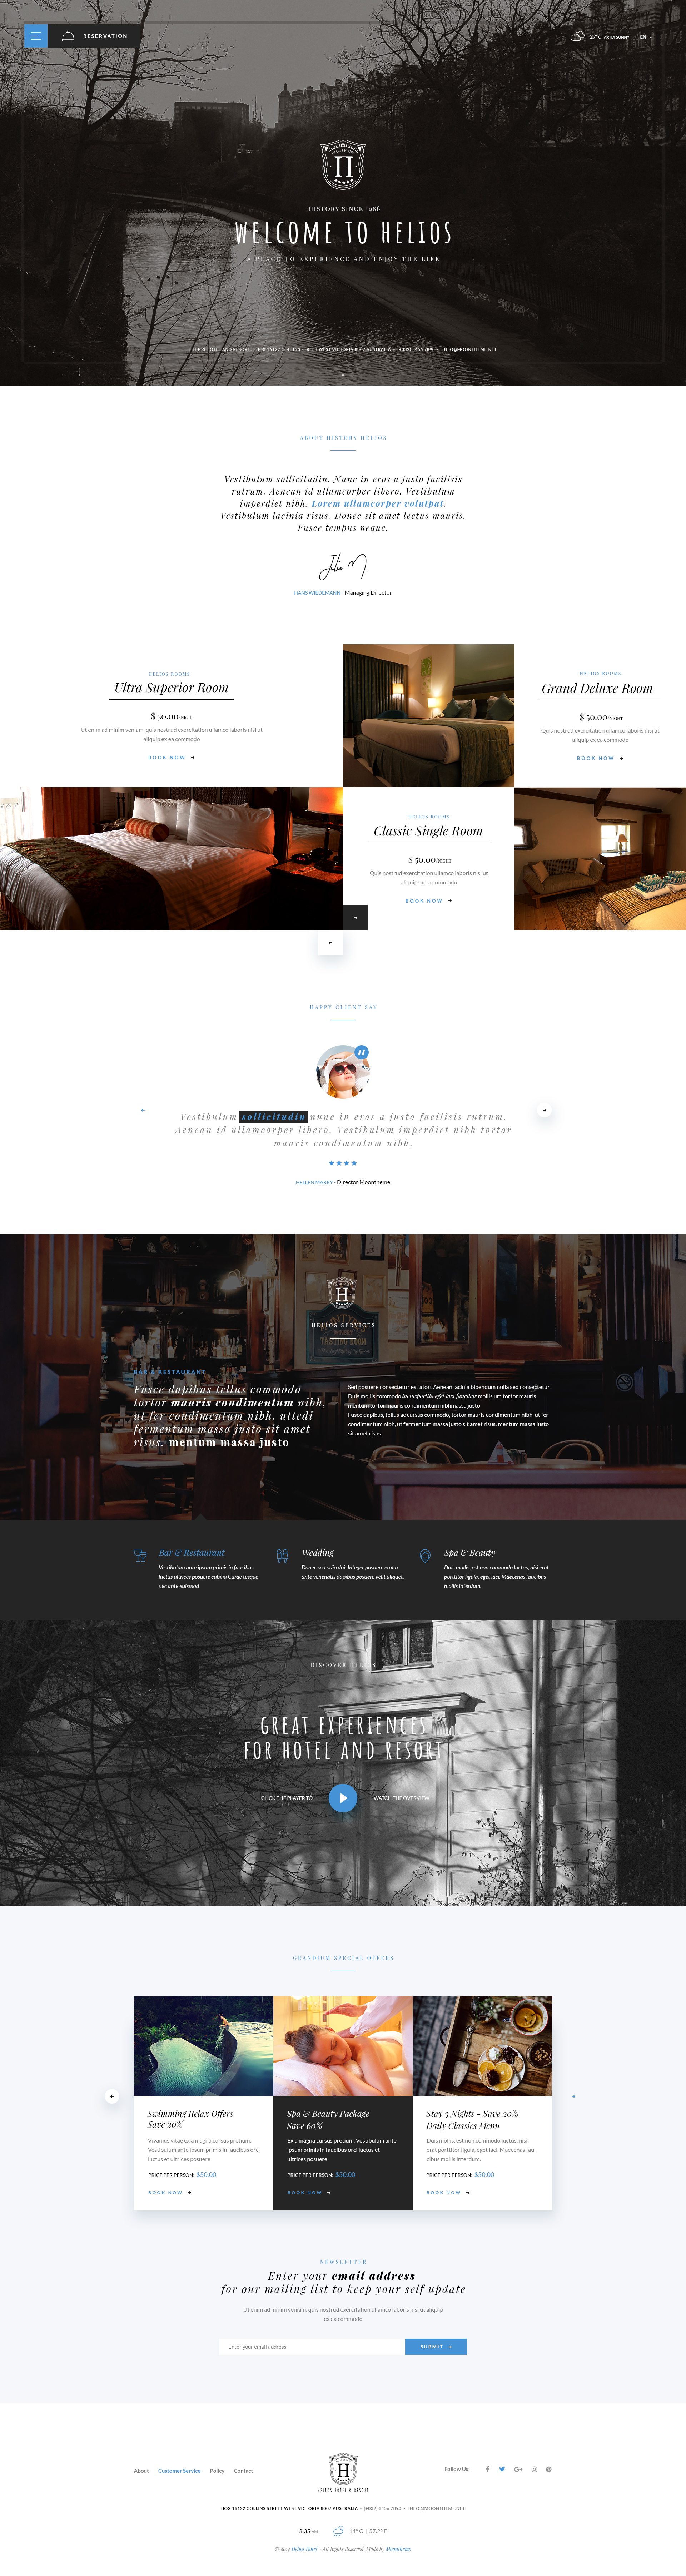 HELIOS - Multipurpose Hotel & Resort PSD Template by moontheme ...